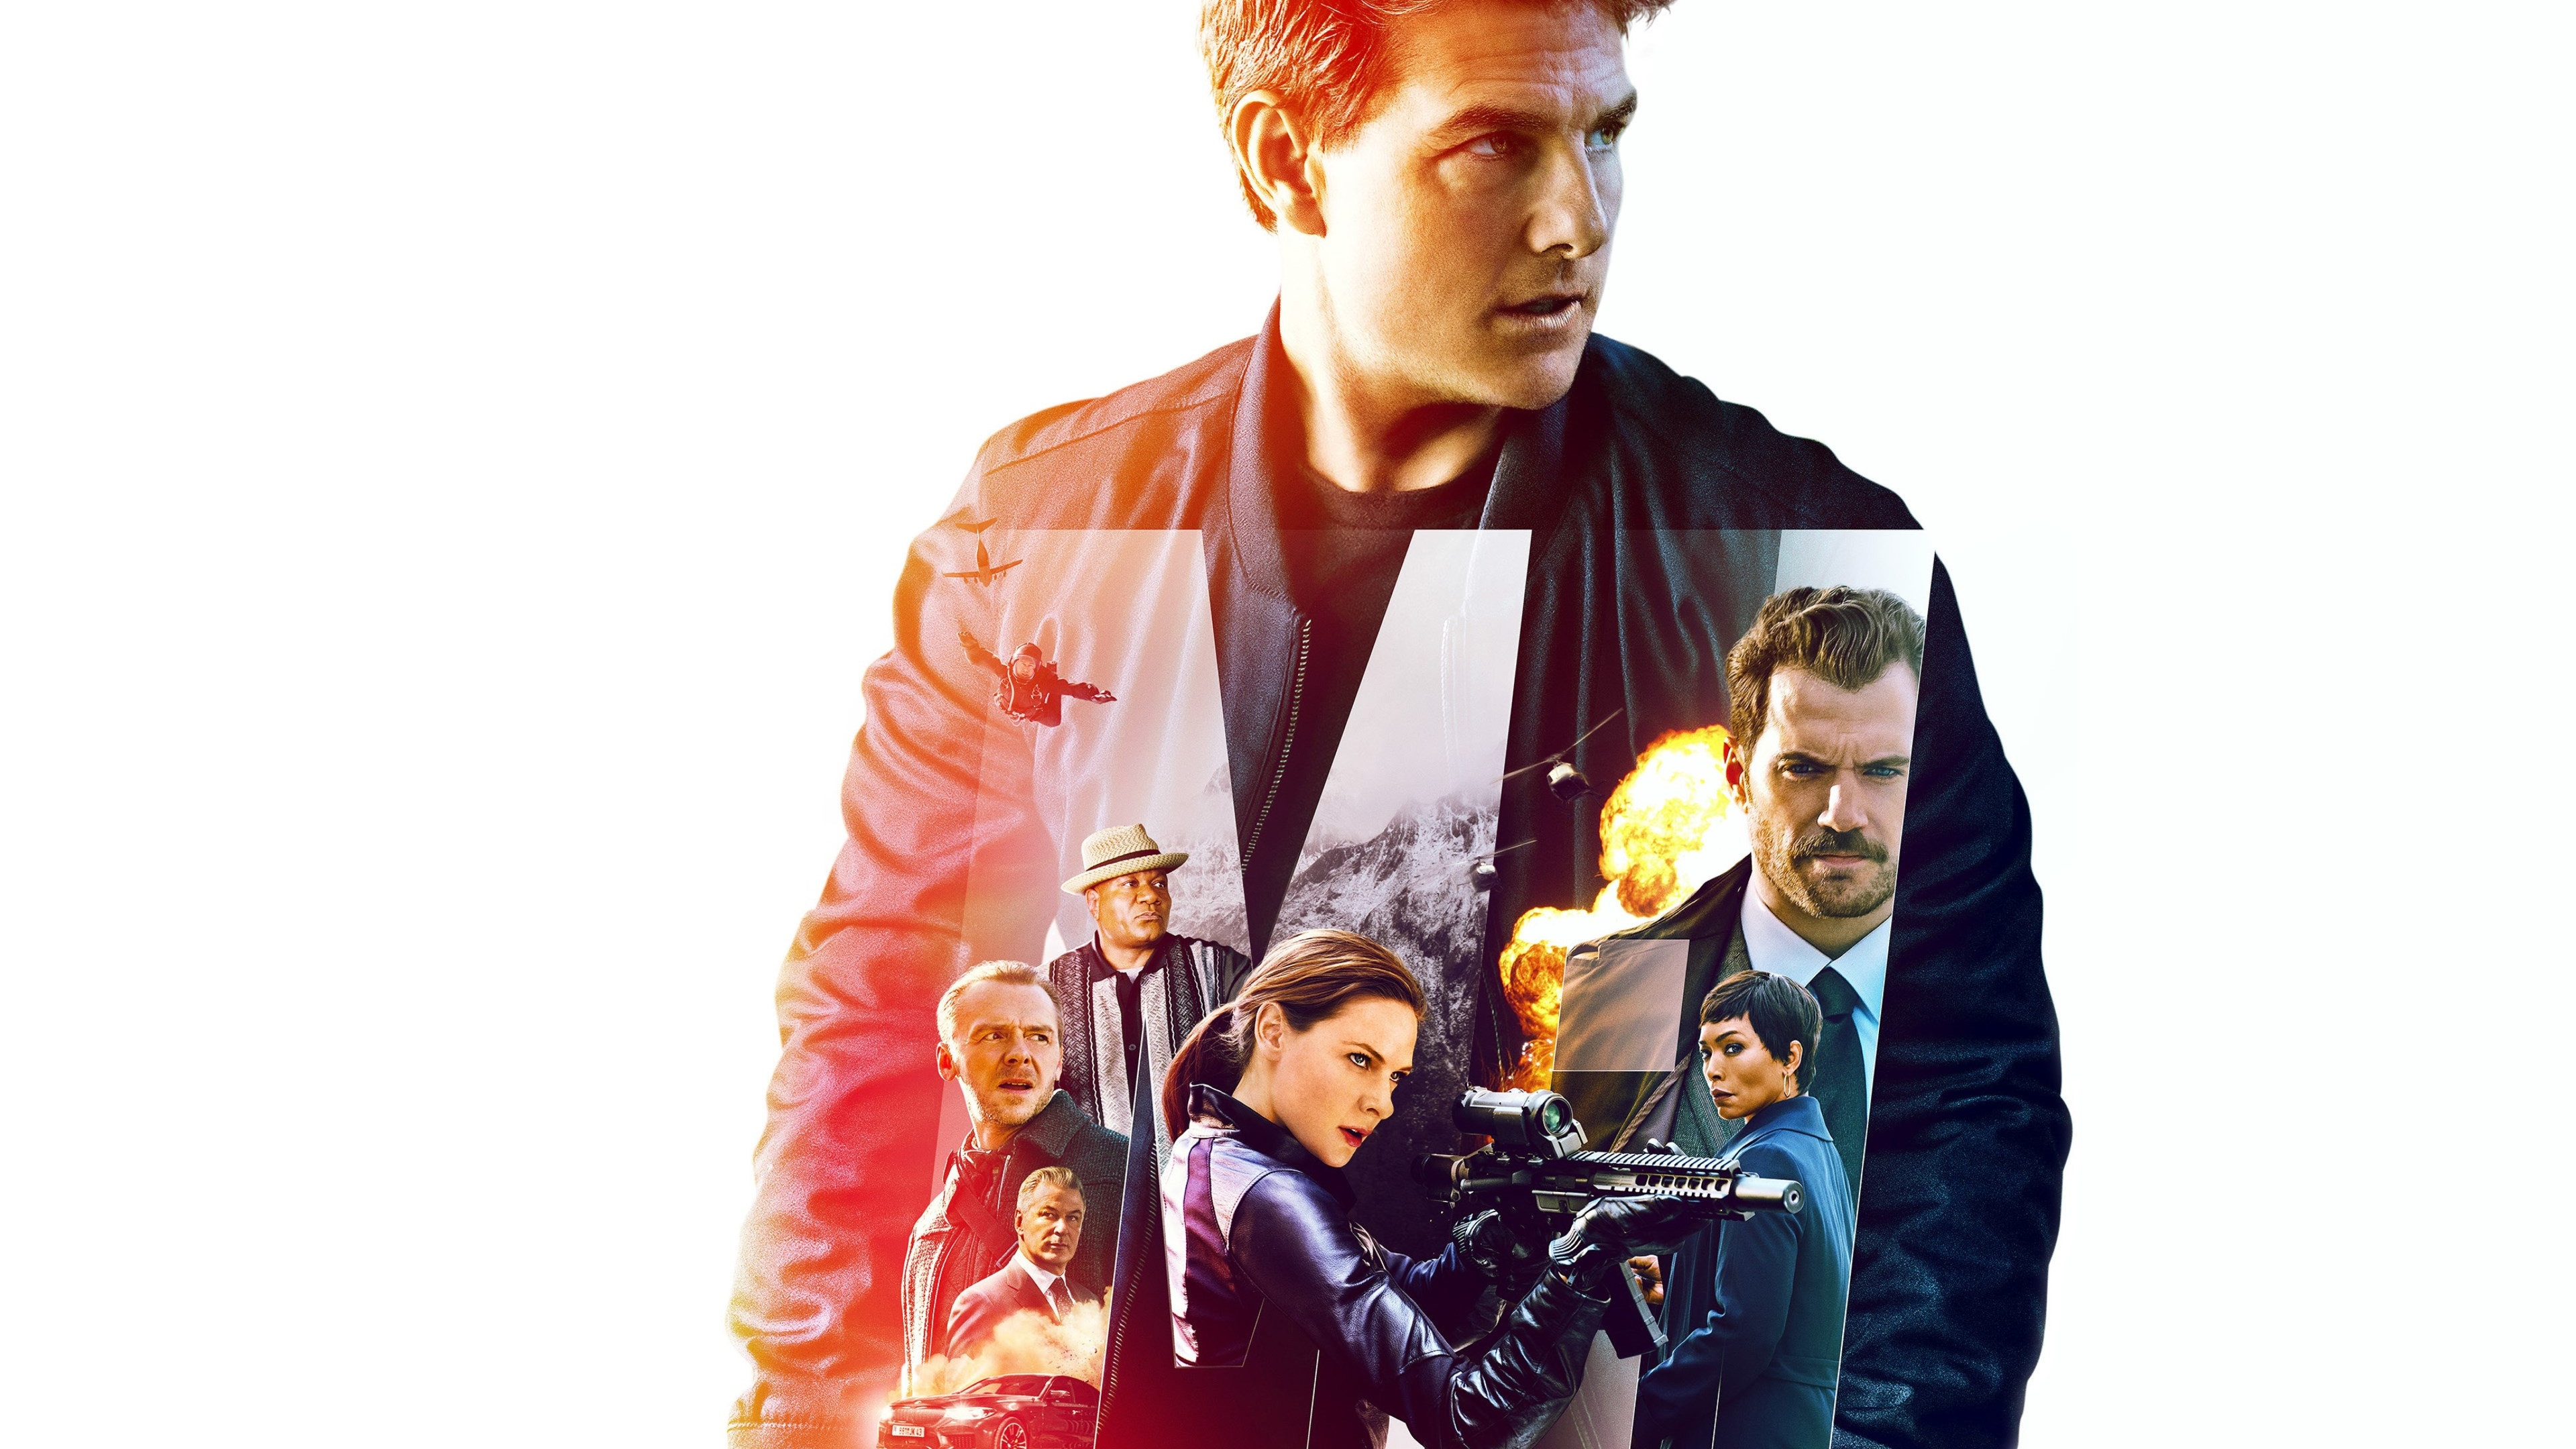 Mission: Impossible Fallout wallpaper 3840x2160